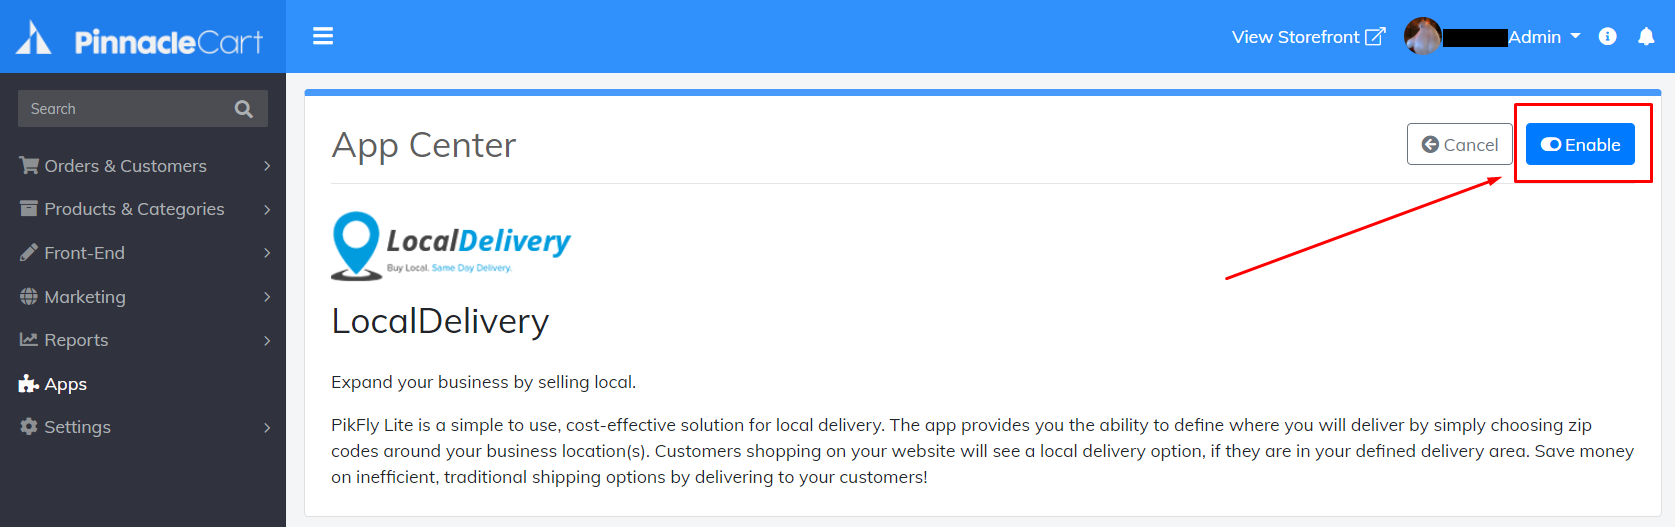 enable-local-delivery